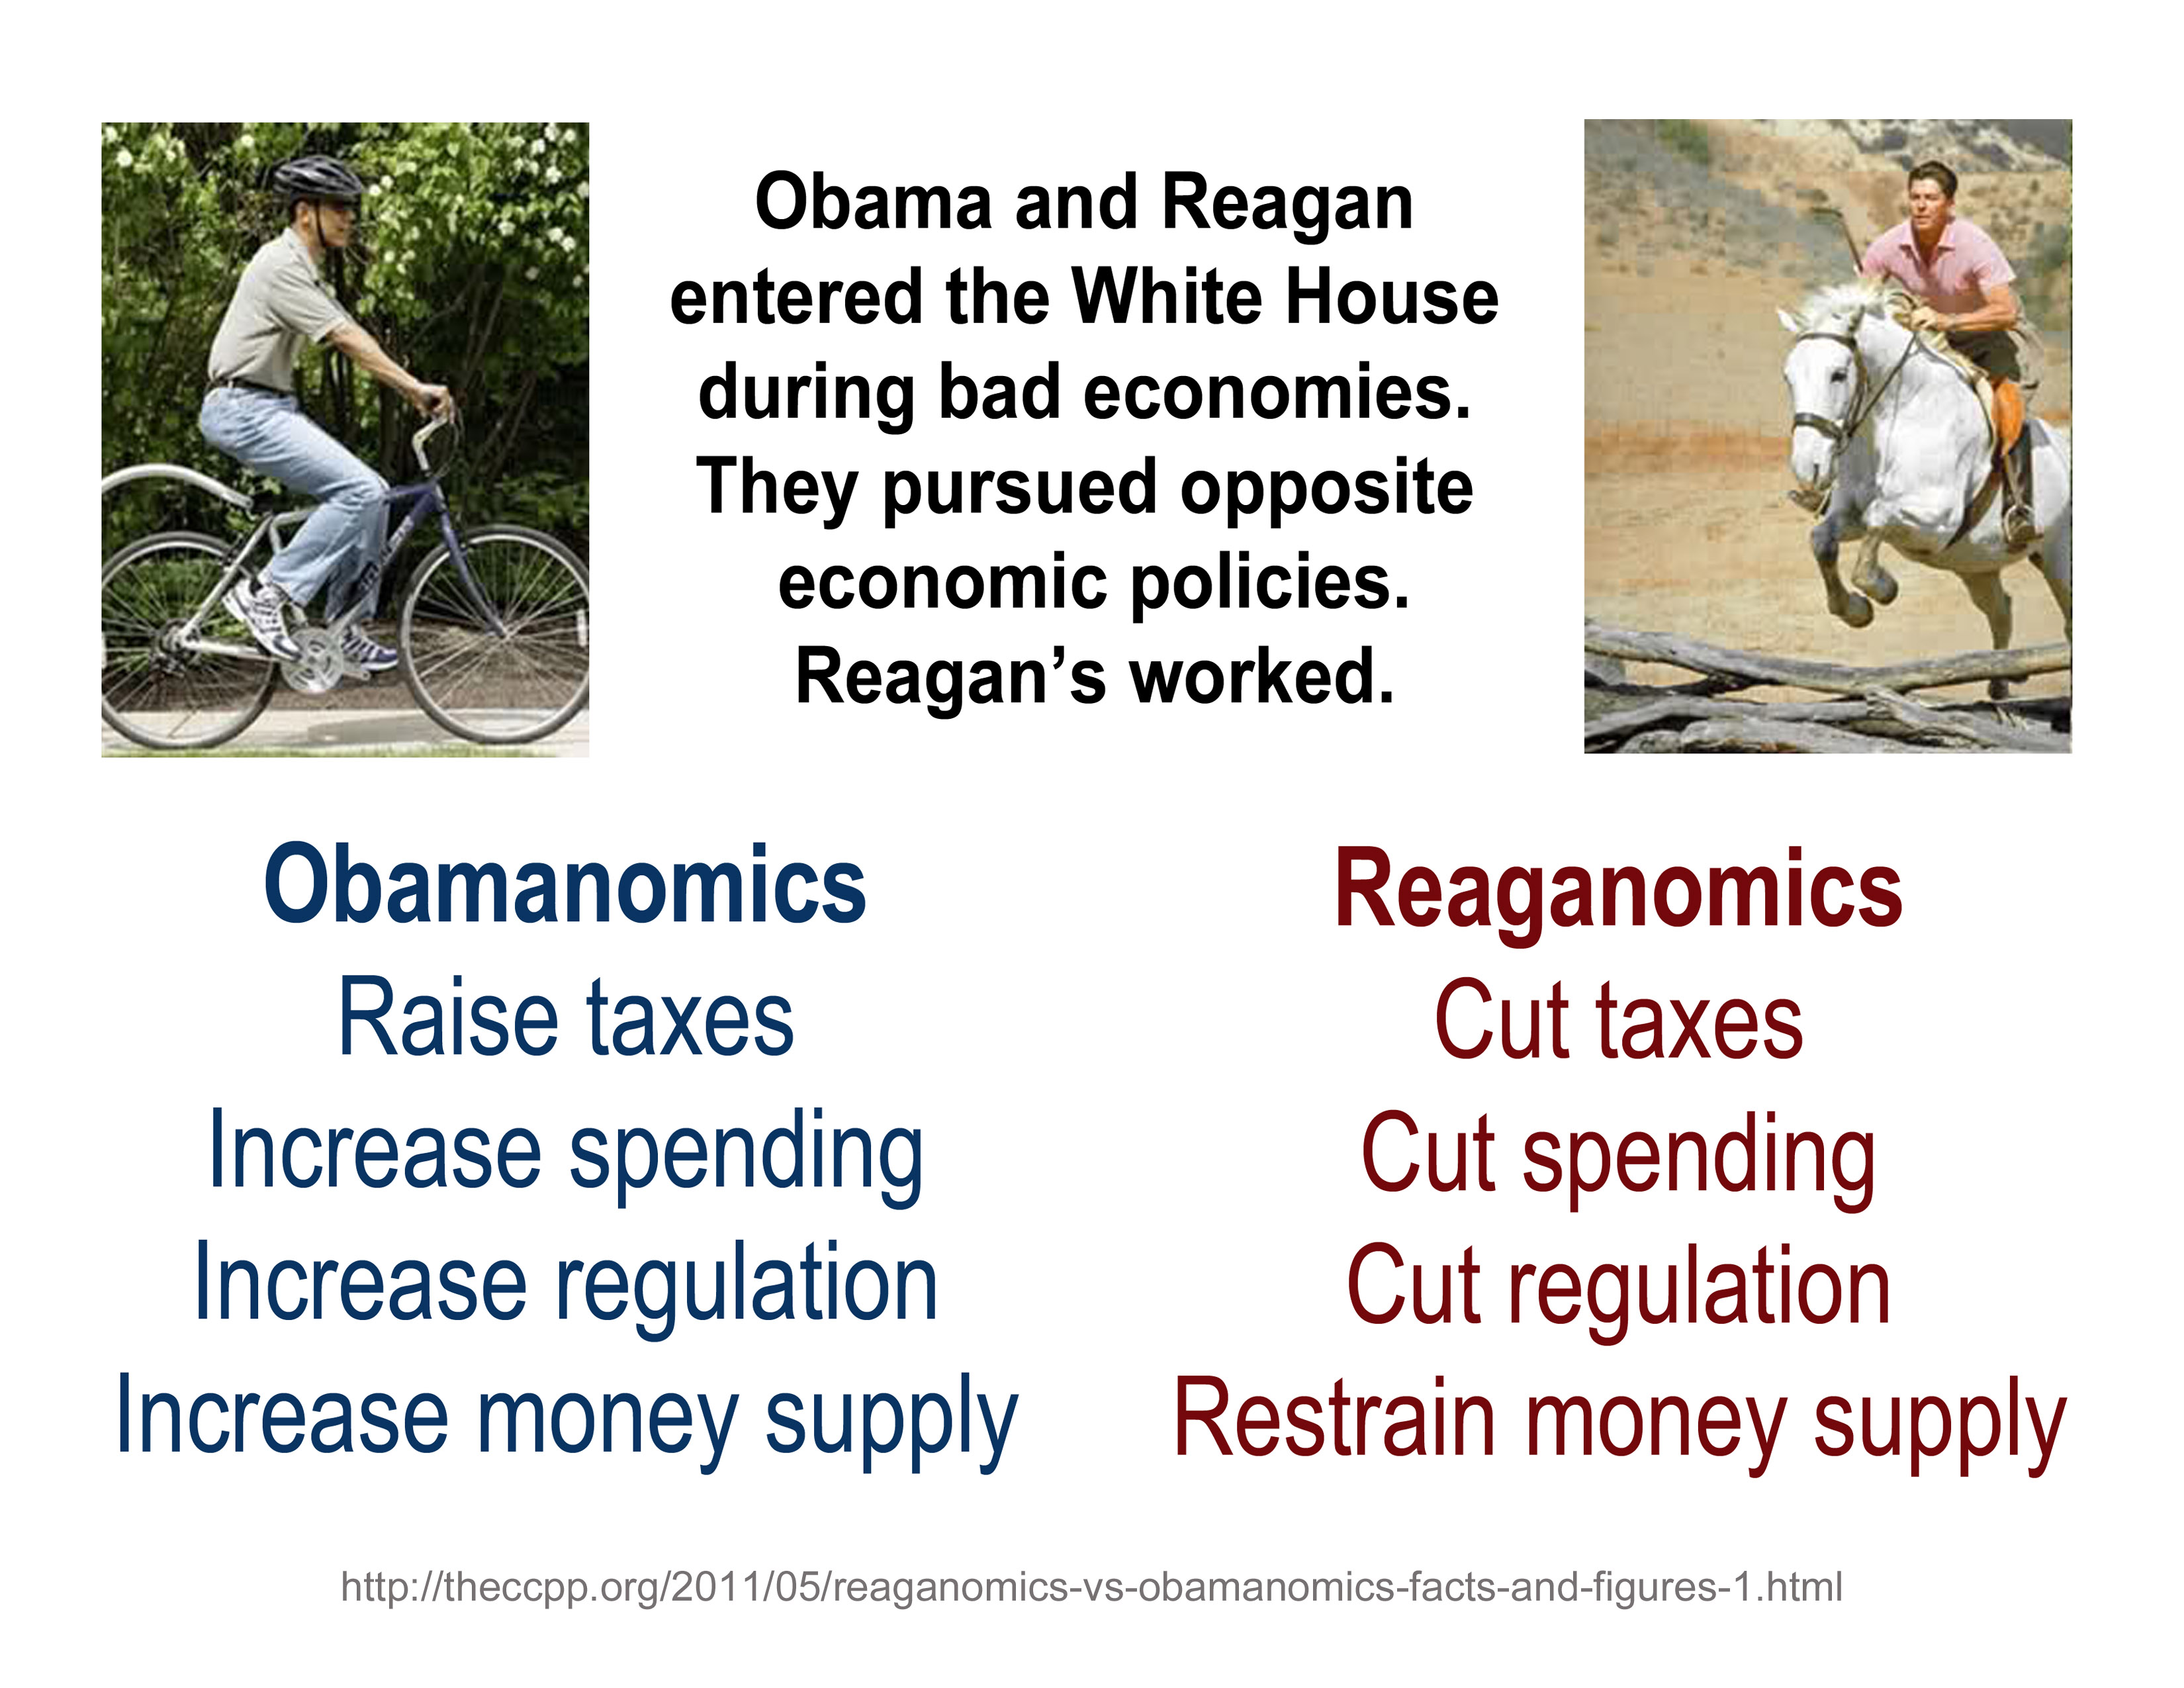 ronald reagan and reaganomics The media called it reaganomics during the campaign of 1980, ronald reagan  announced a recipe to fix the nation's economic mess he claimed an undue.